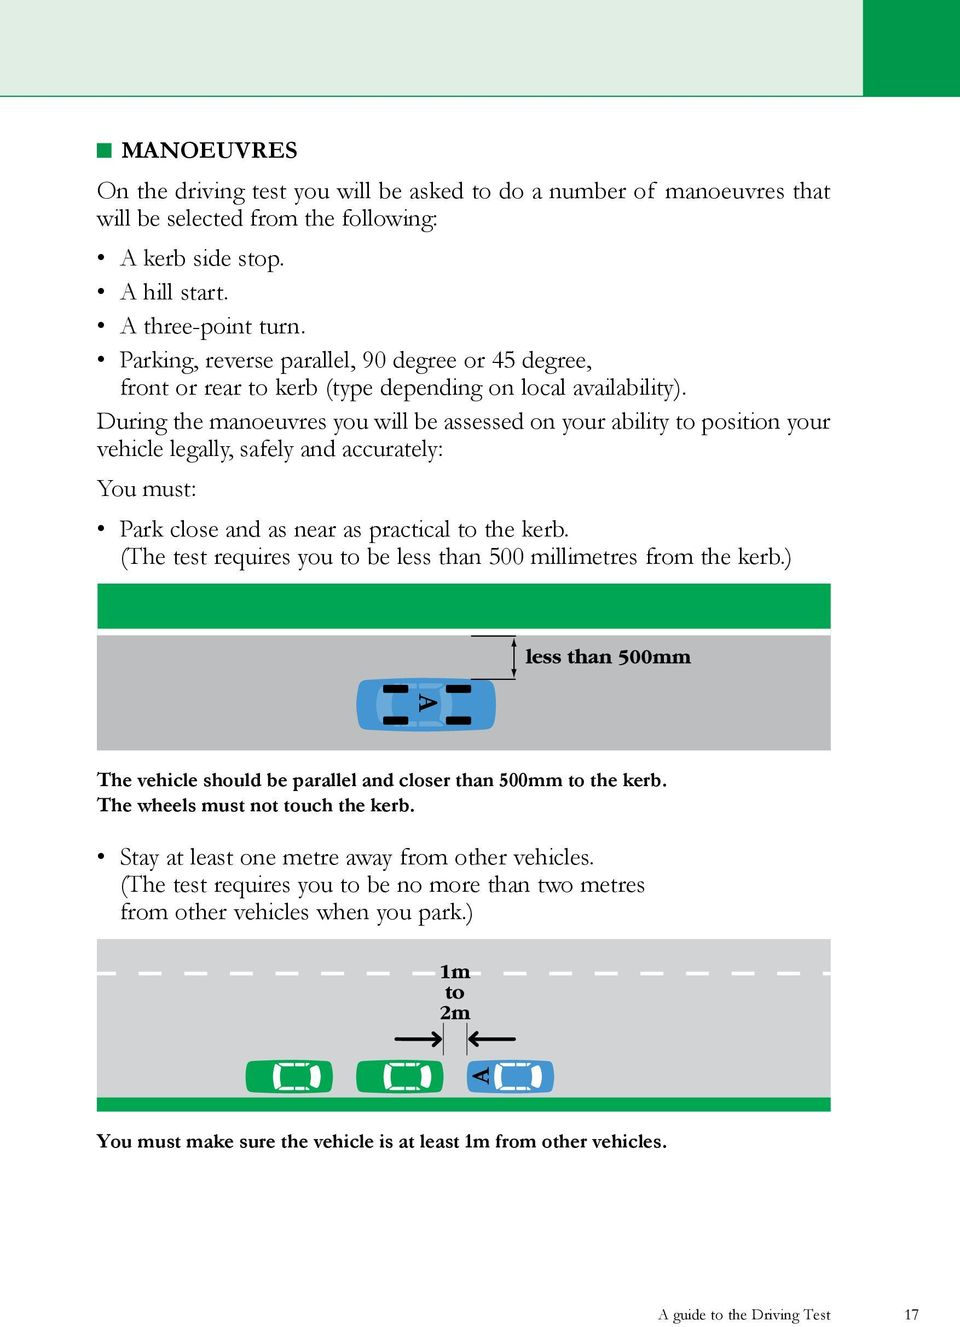 During the manoeuvres you will be assessed on your ability to position your vehicle legally, safely and accurately: You must: Park close and as near as practical to the kerb.